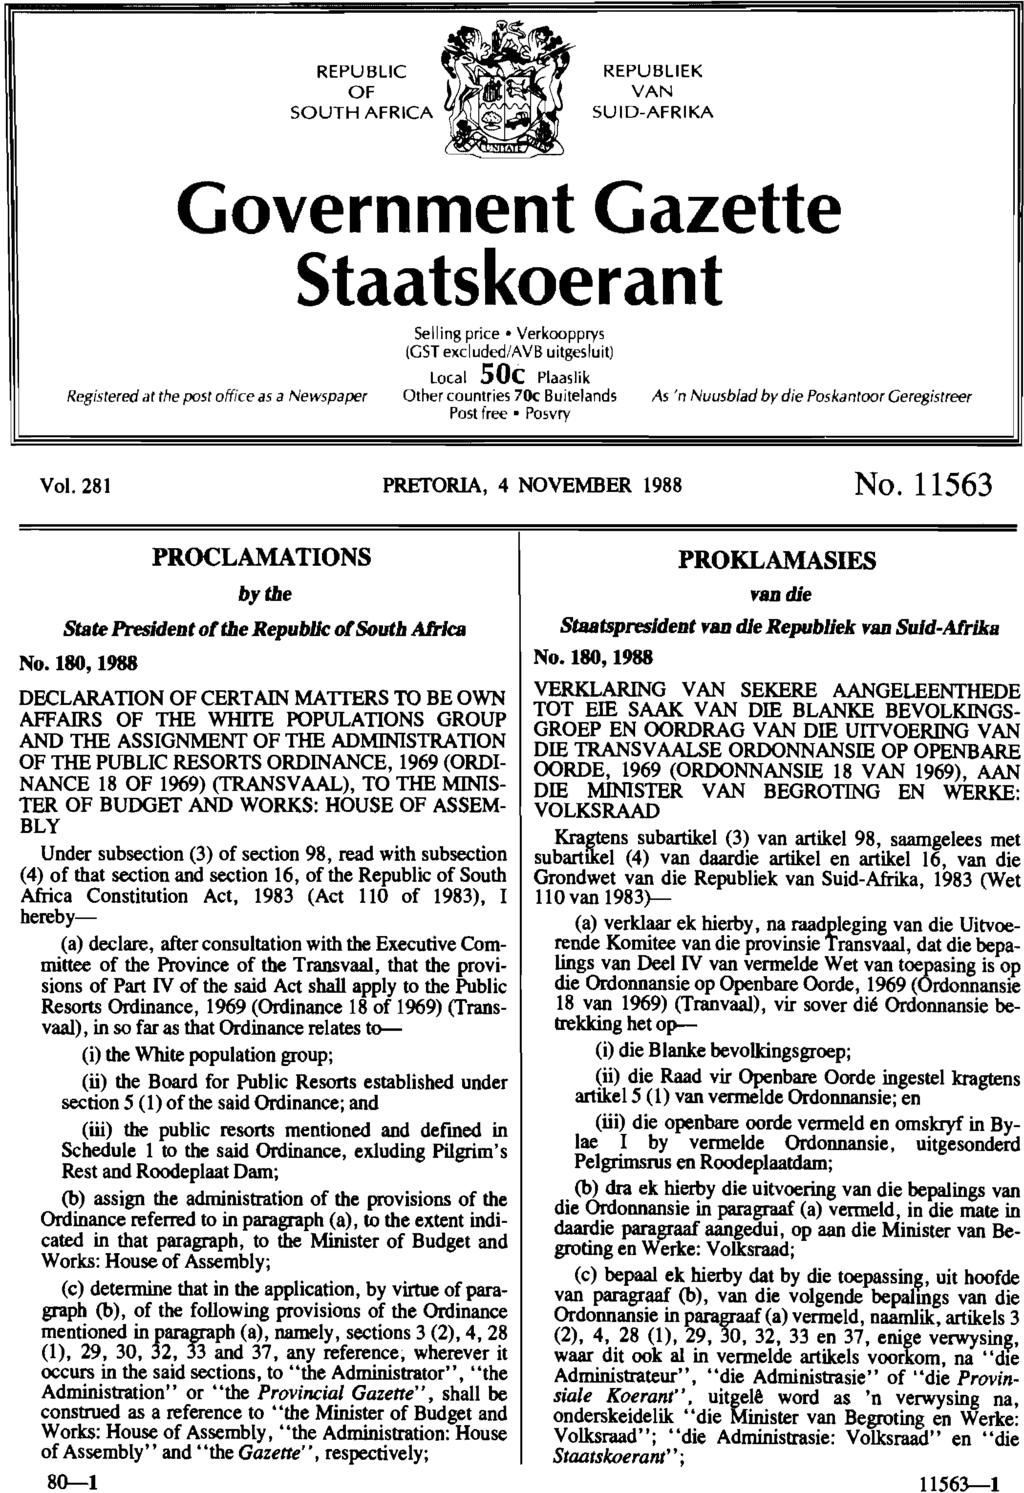 REPUBLIC OF SOUTH AFRICA REPUBLIEK VAN SUID-AFRIKA Government Gazette Staatskoerant Selling price' Verkoopprys (GST exciuded/avb uitgesluit) local 50c Plaaslik Registered at the post office as a